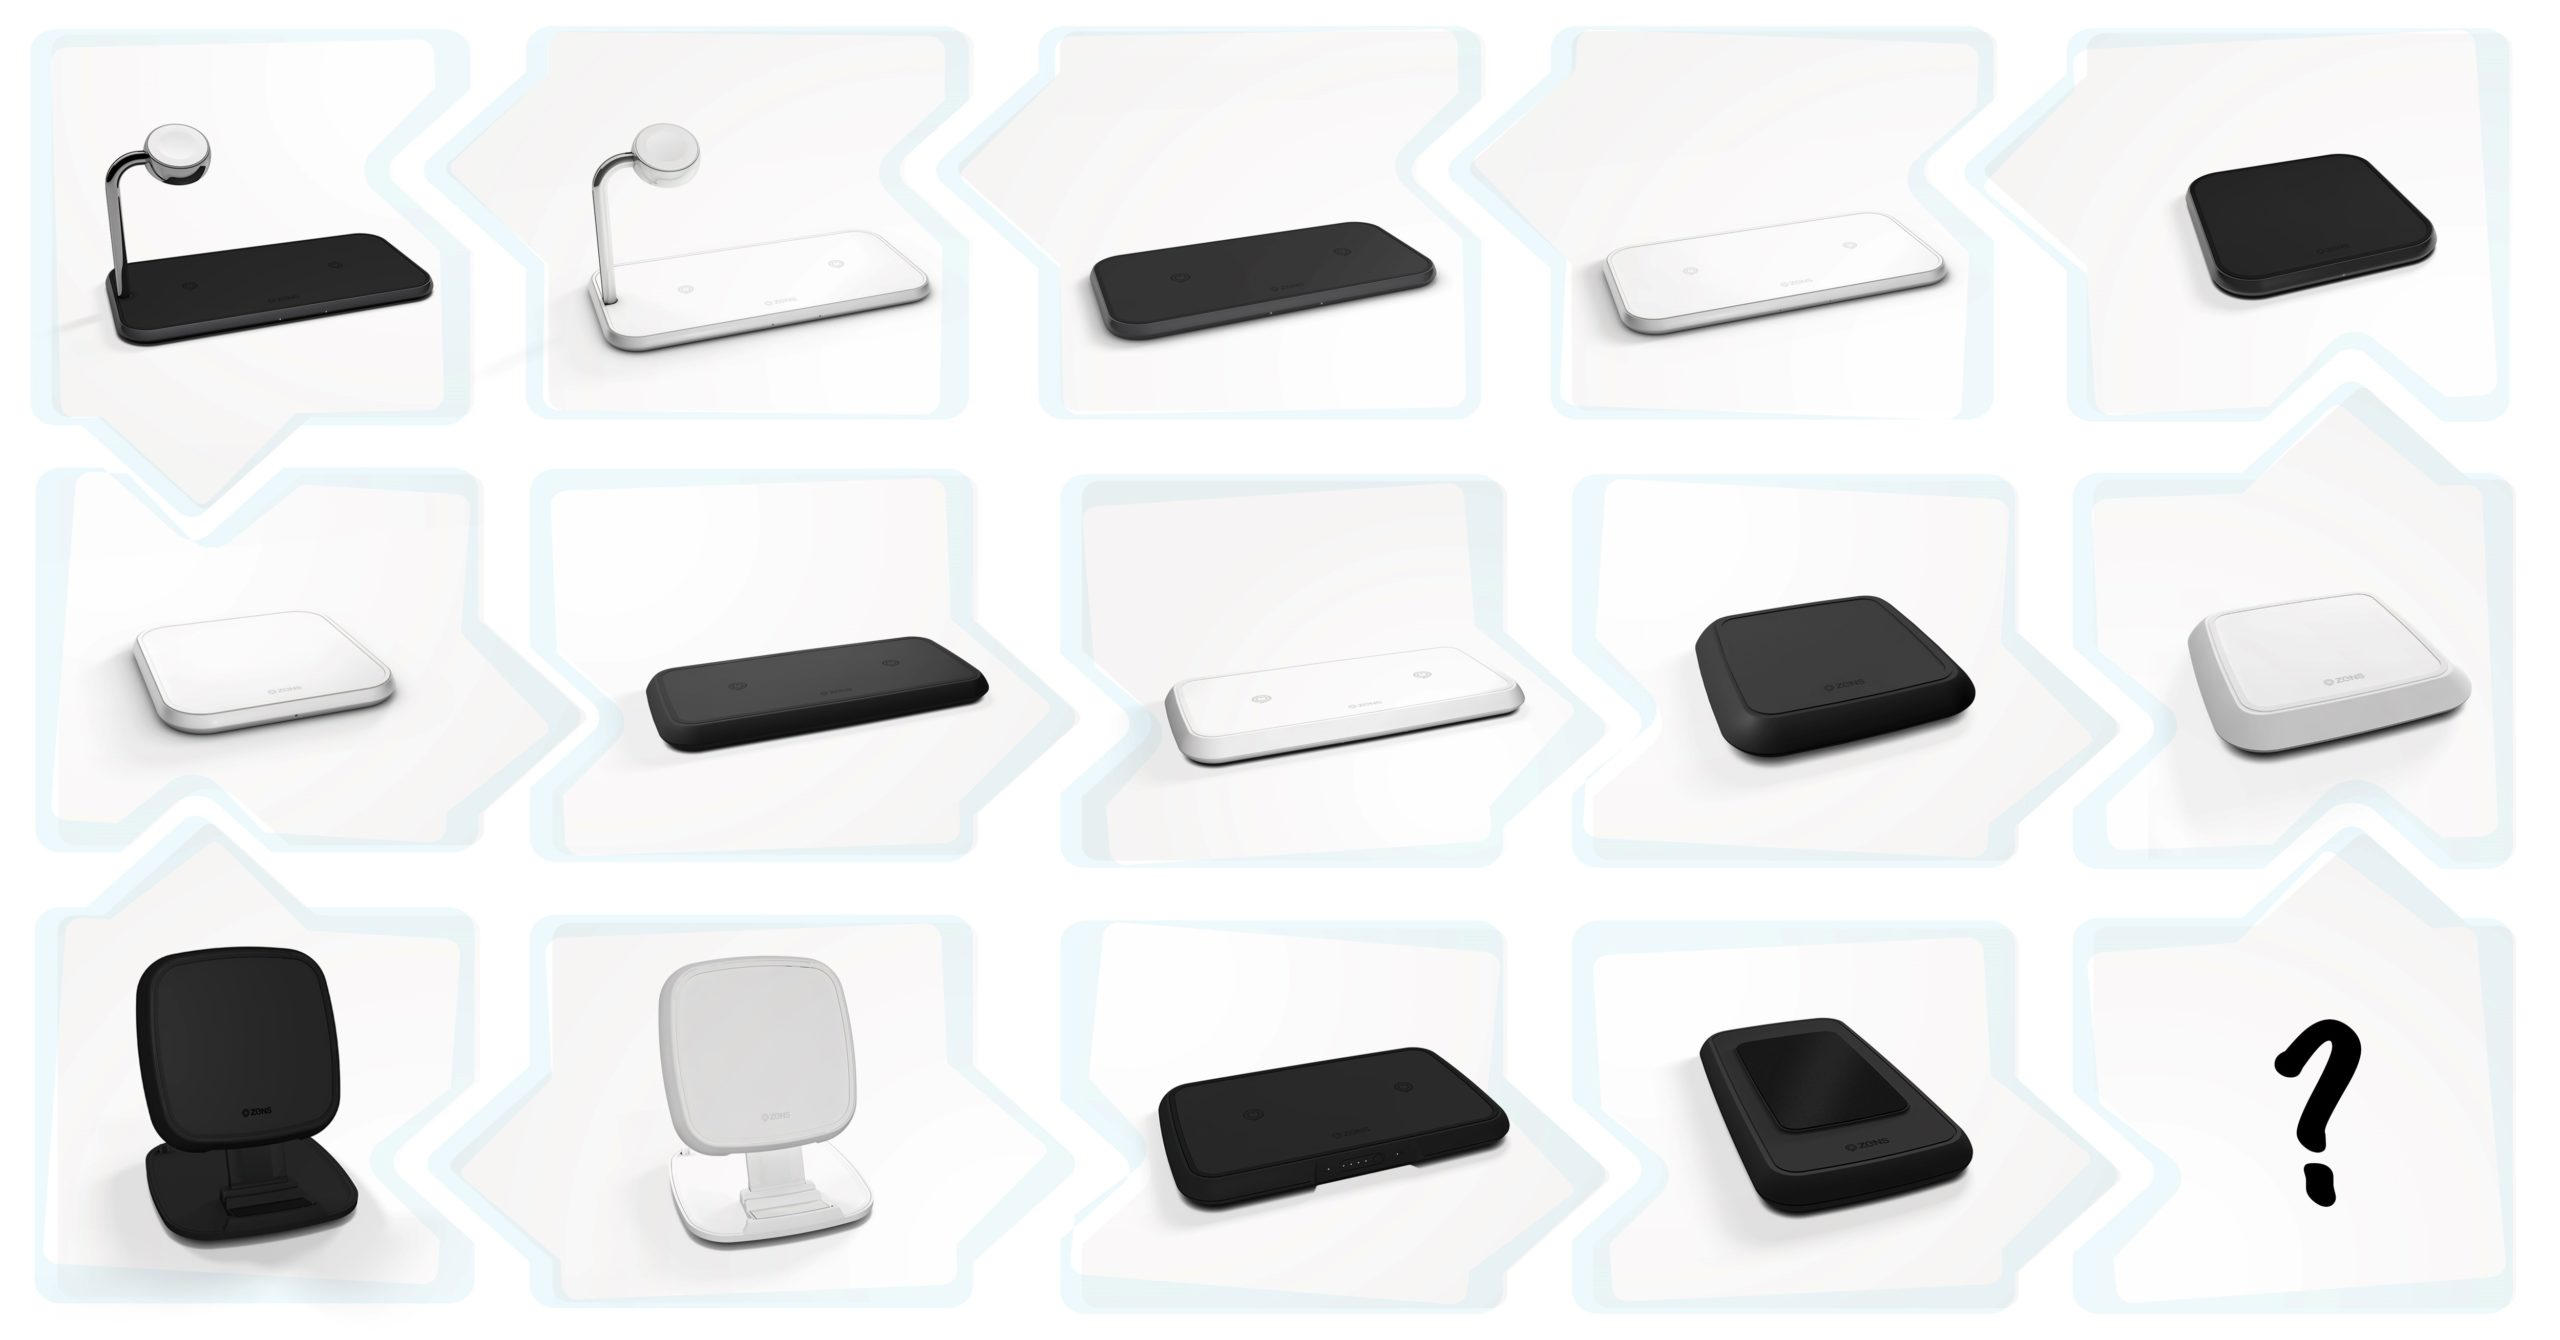 ZENS multiple wireless chargers